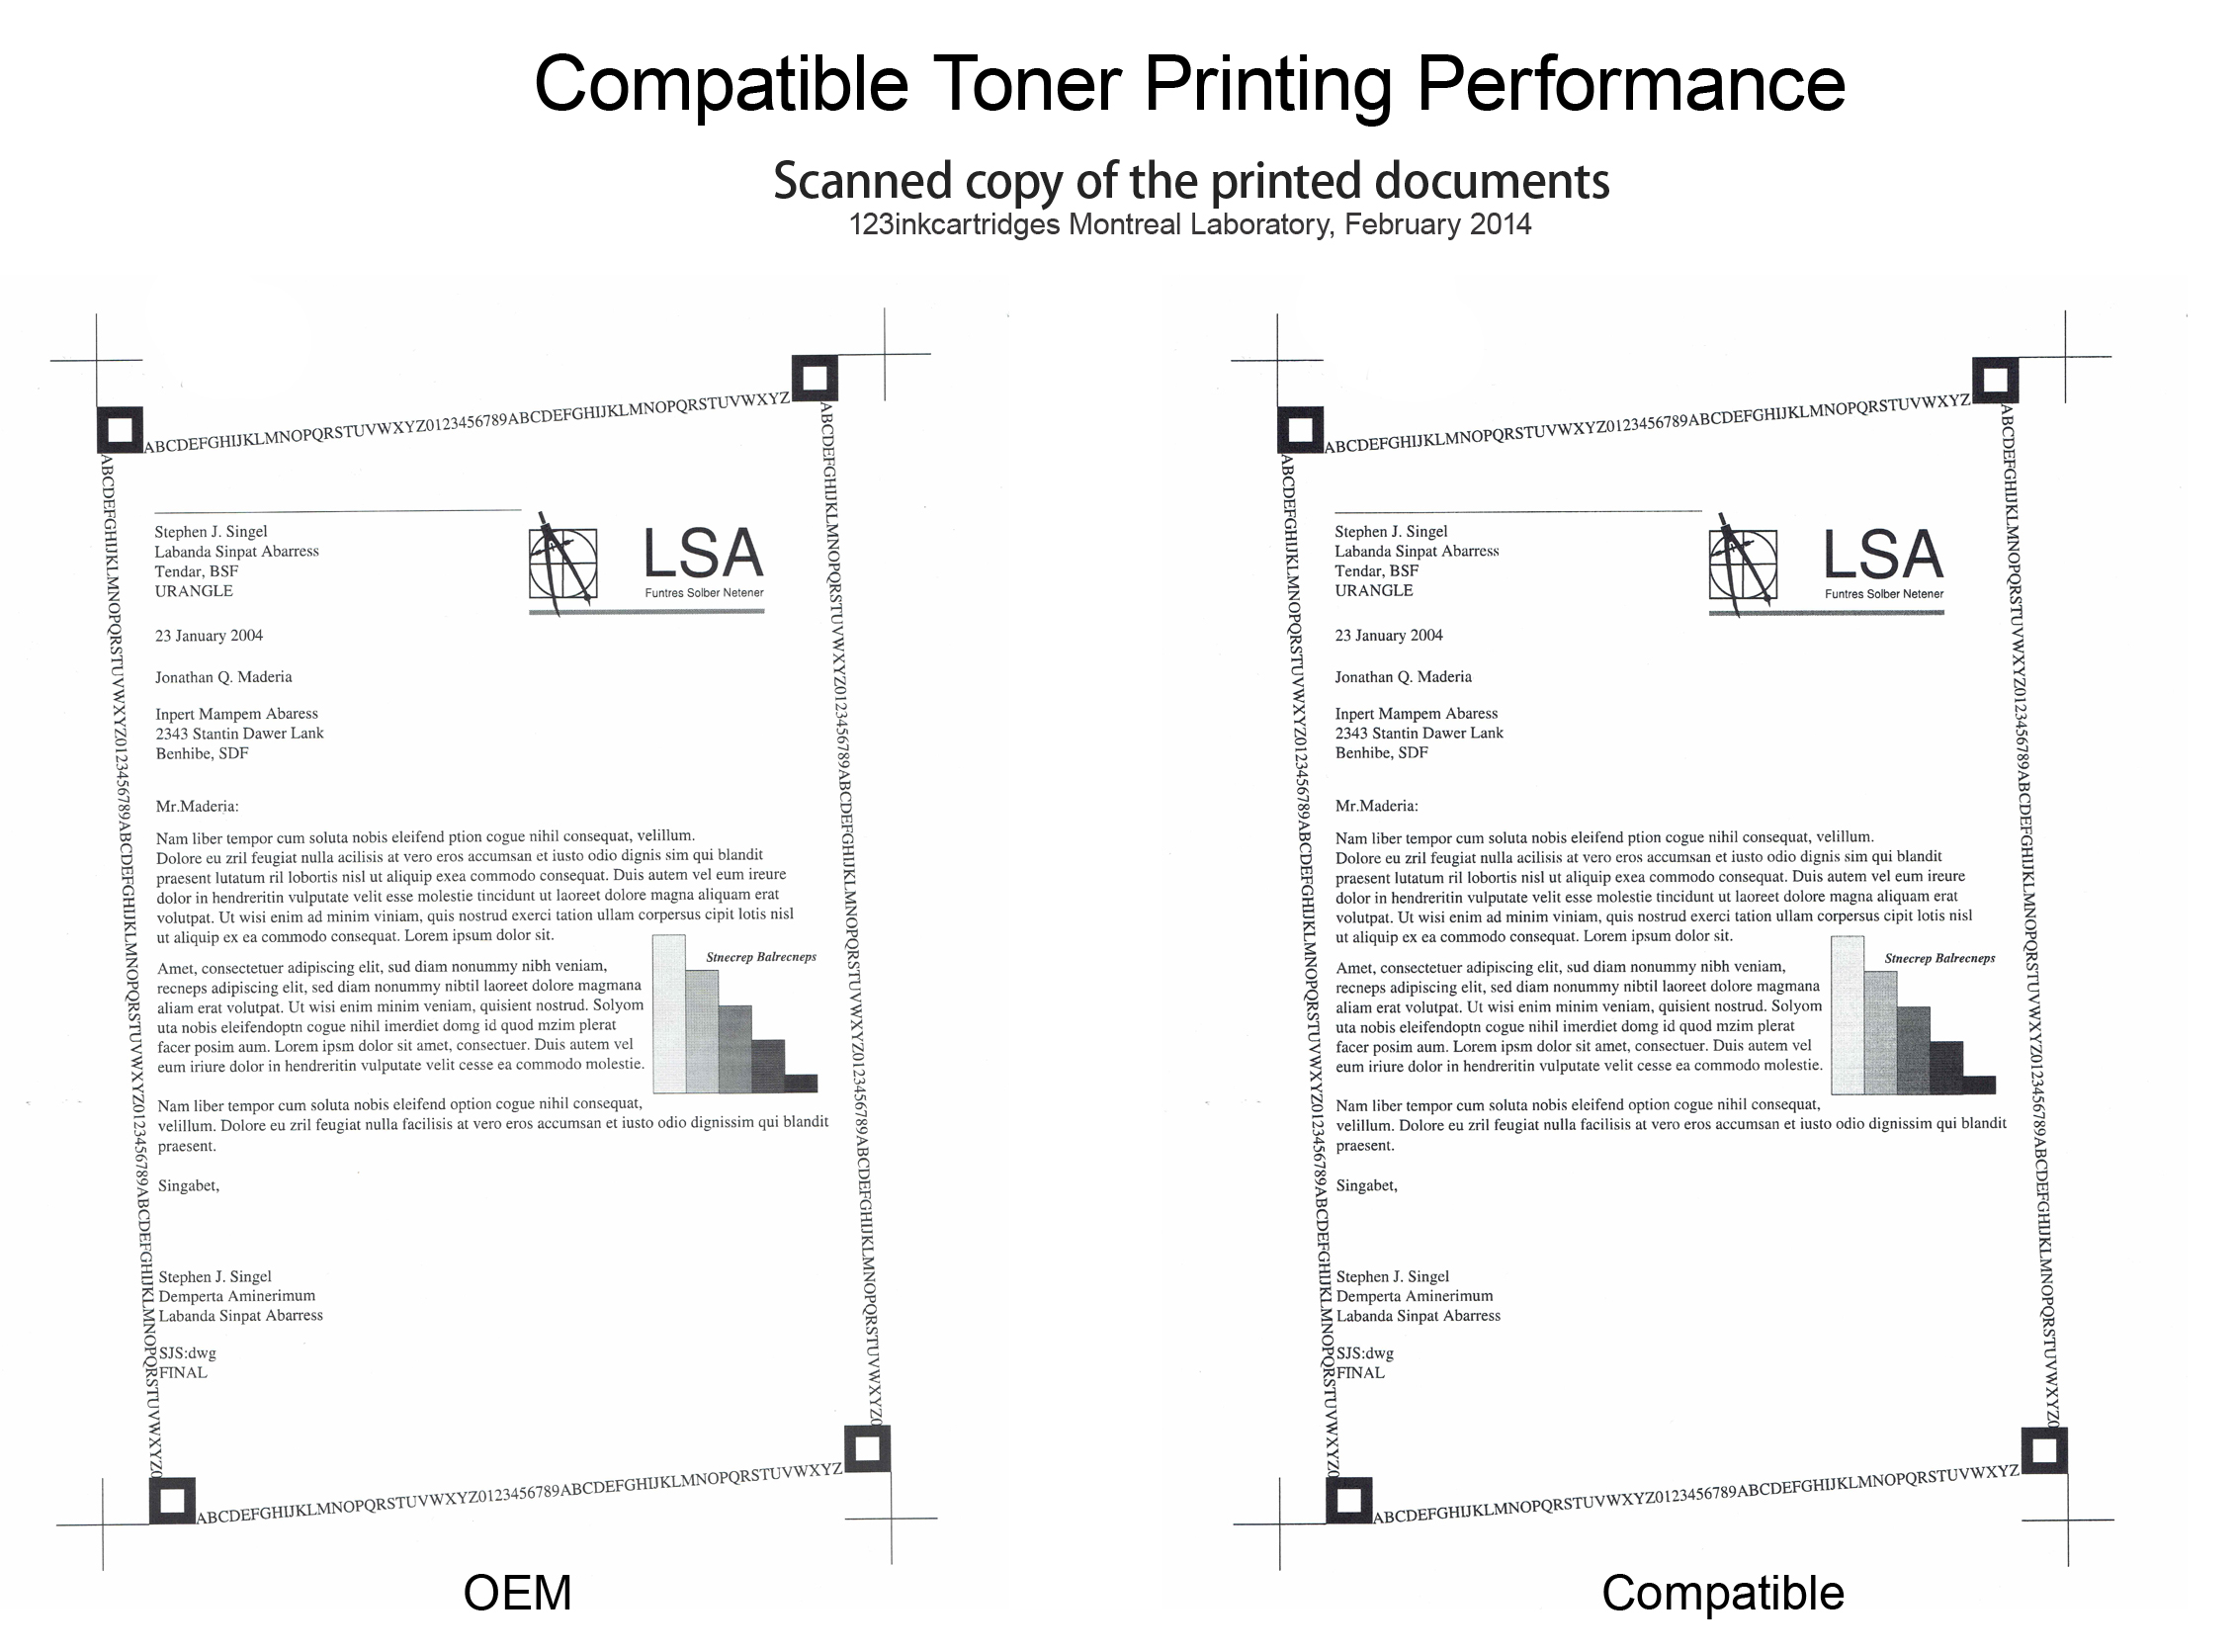 Scanned copy of the ISO19752 printout